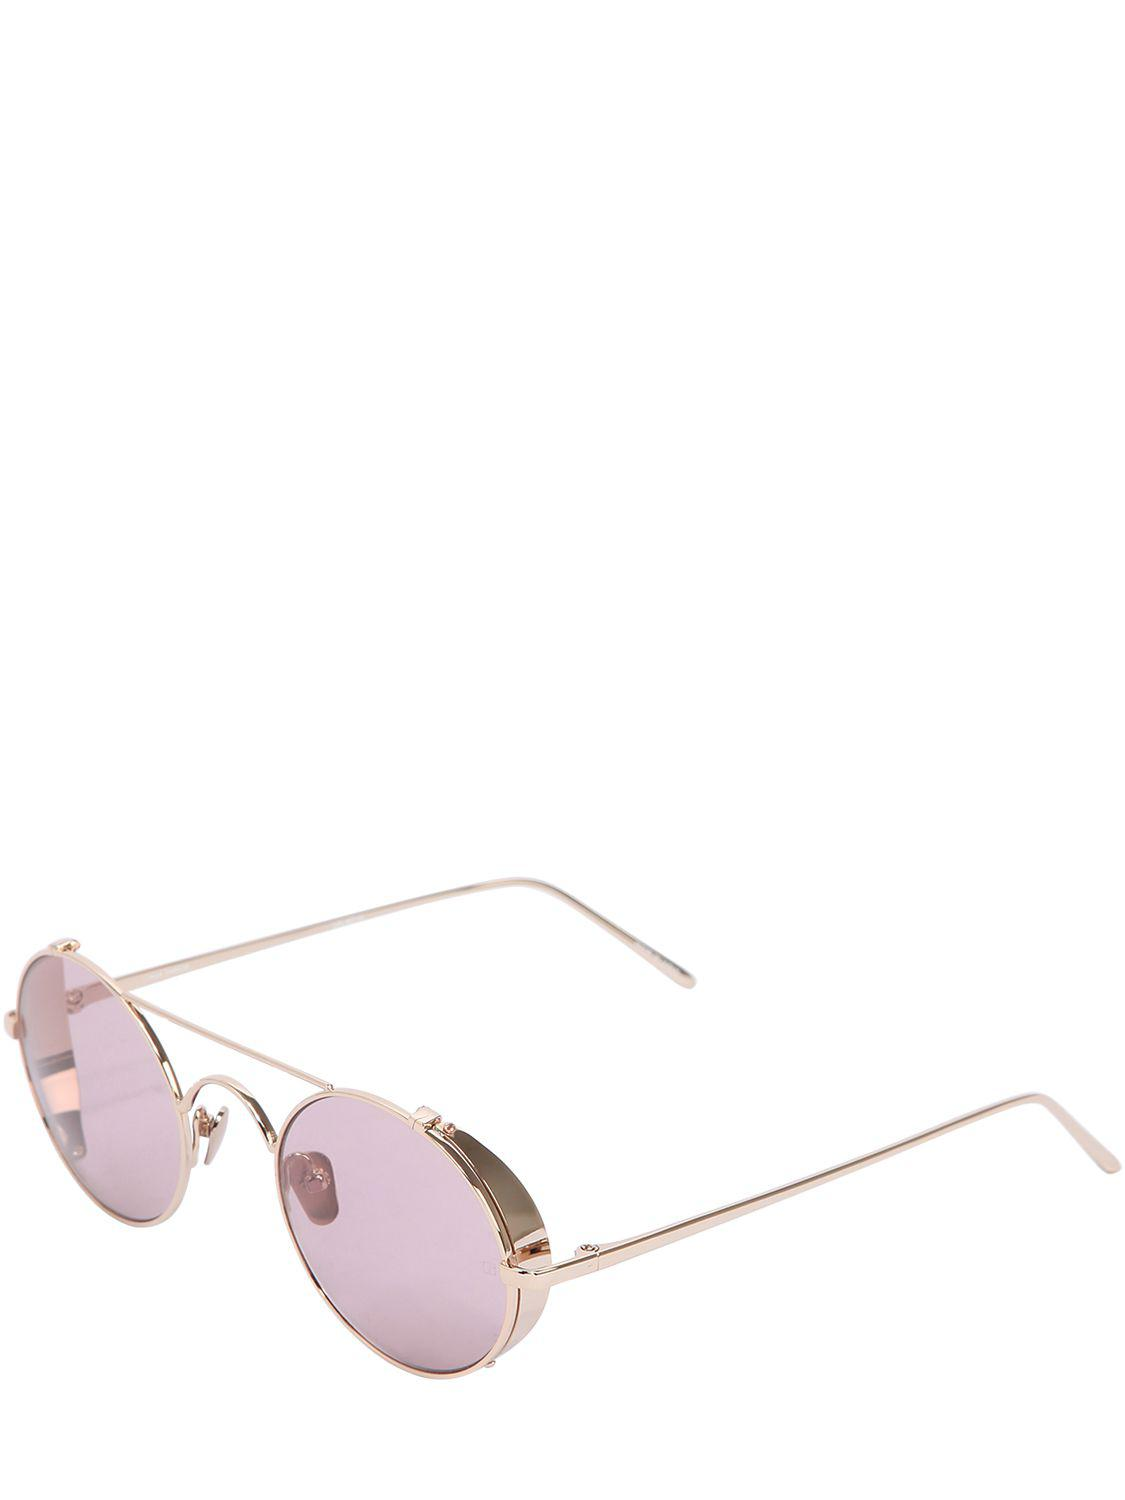 linda farrow 427 c12 round sunglasses in pink lyst